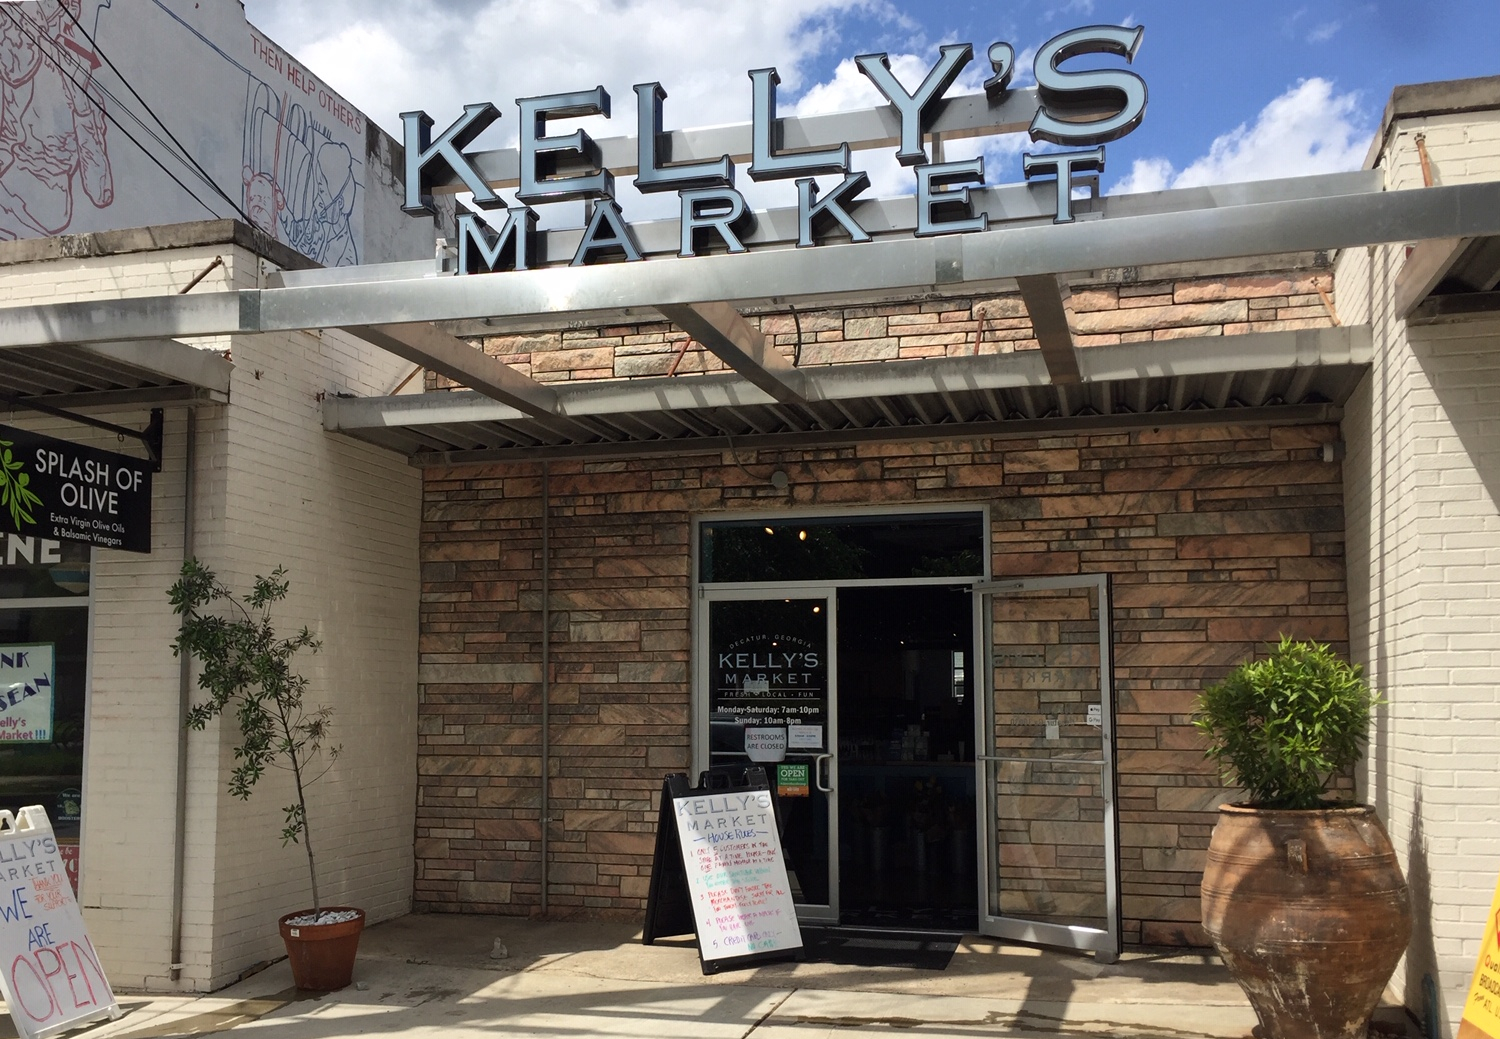 Kelly's Market in Decatur, Georgia